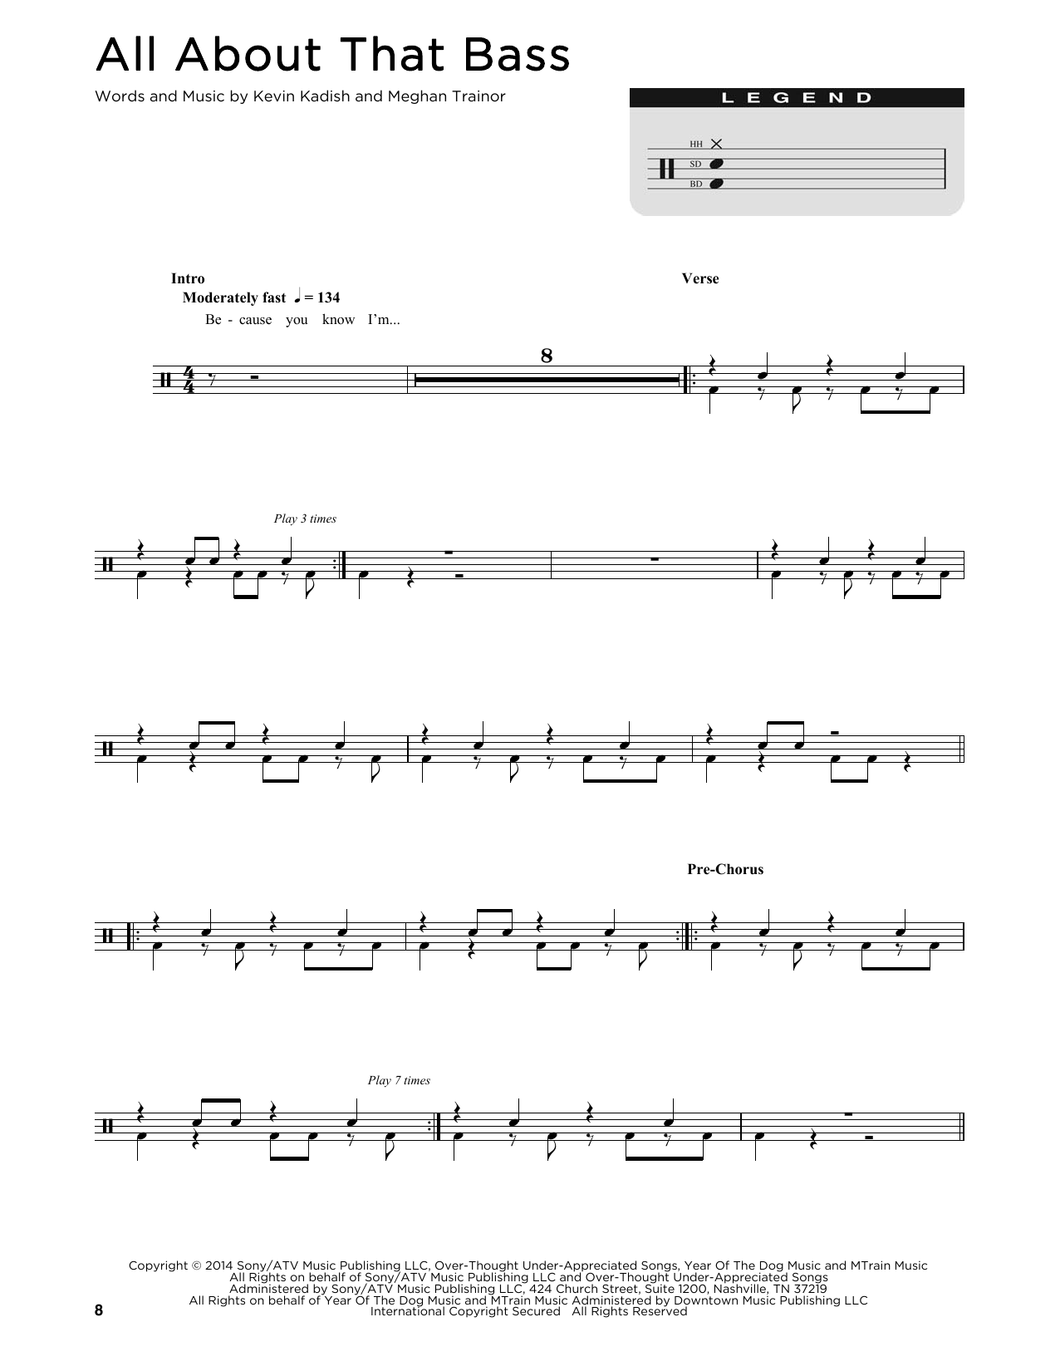 All About That Bass - Meghan Trainor - Full Drum Transcription / Drum Sheet Music - SheetMusicDirect D